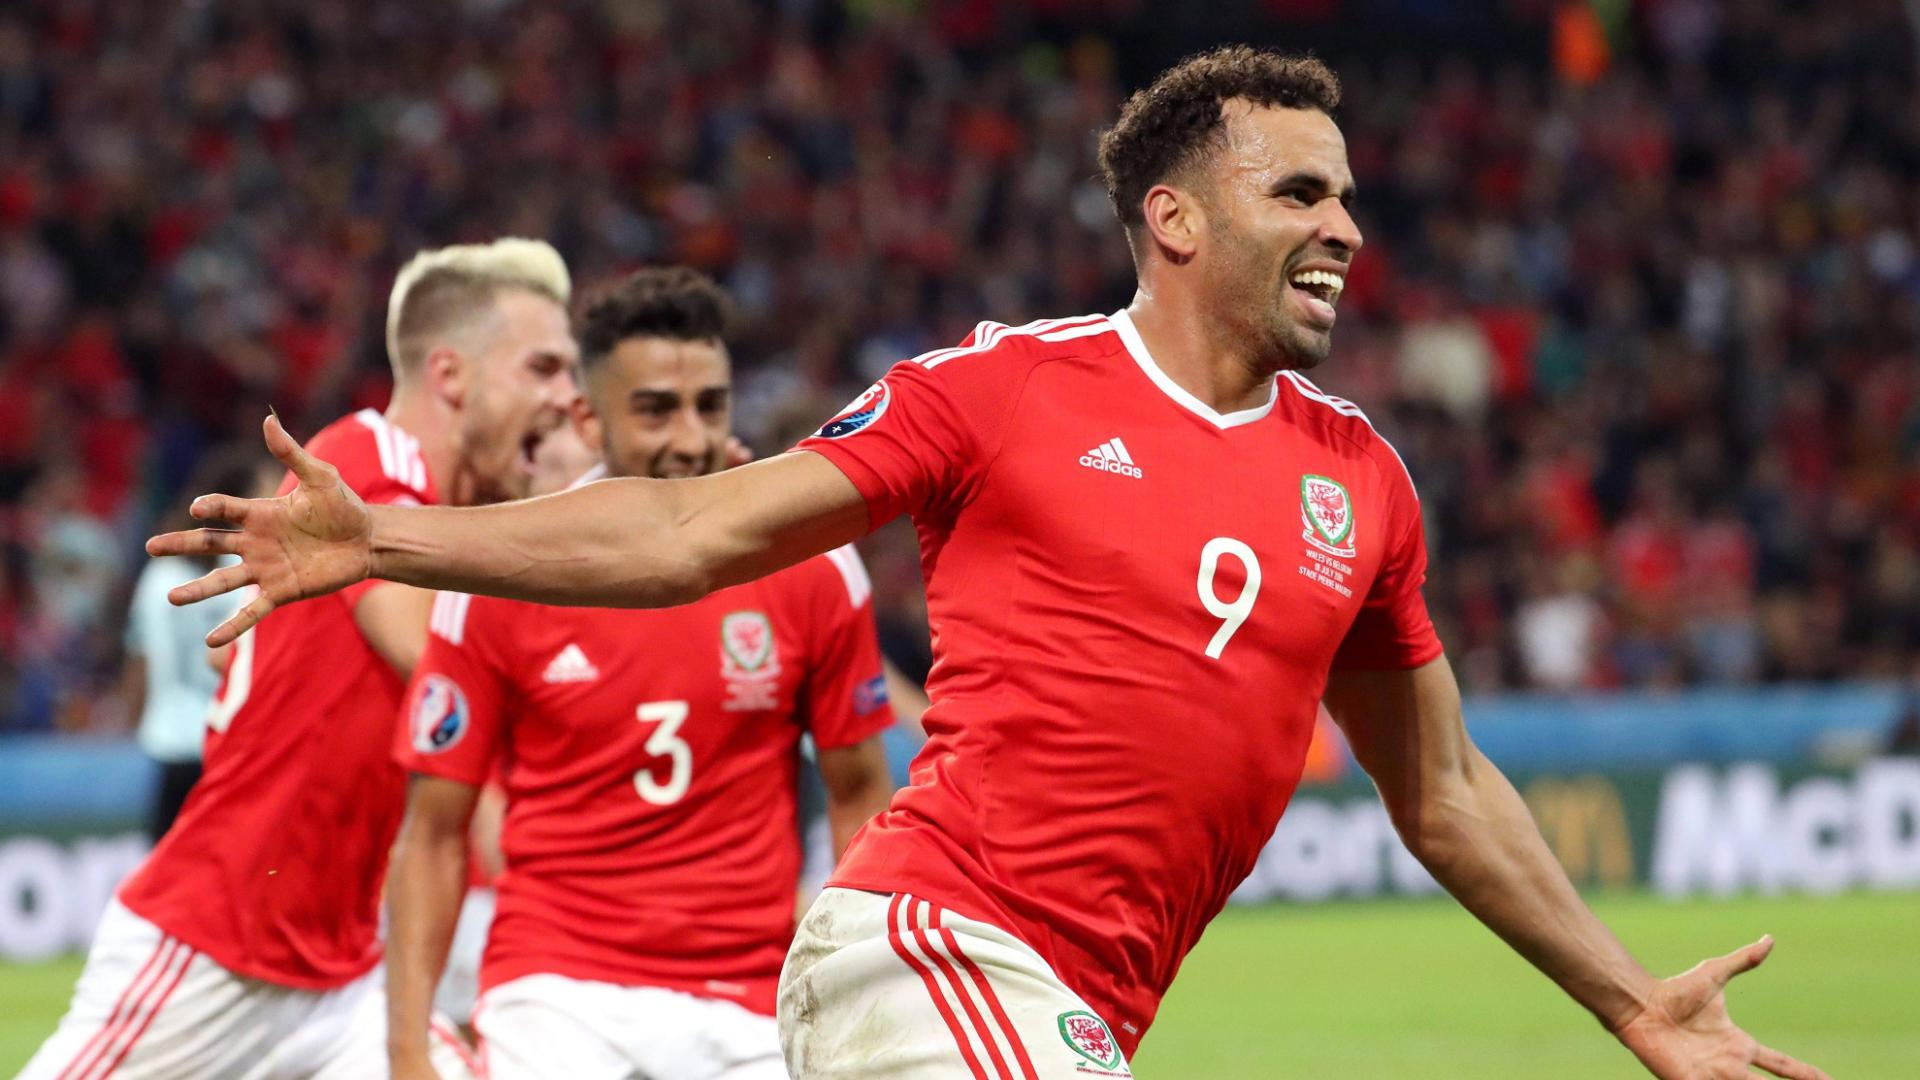 Robson-Kanu's classy finish gives Wales the lead